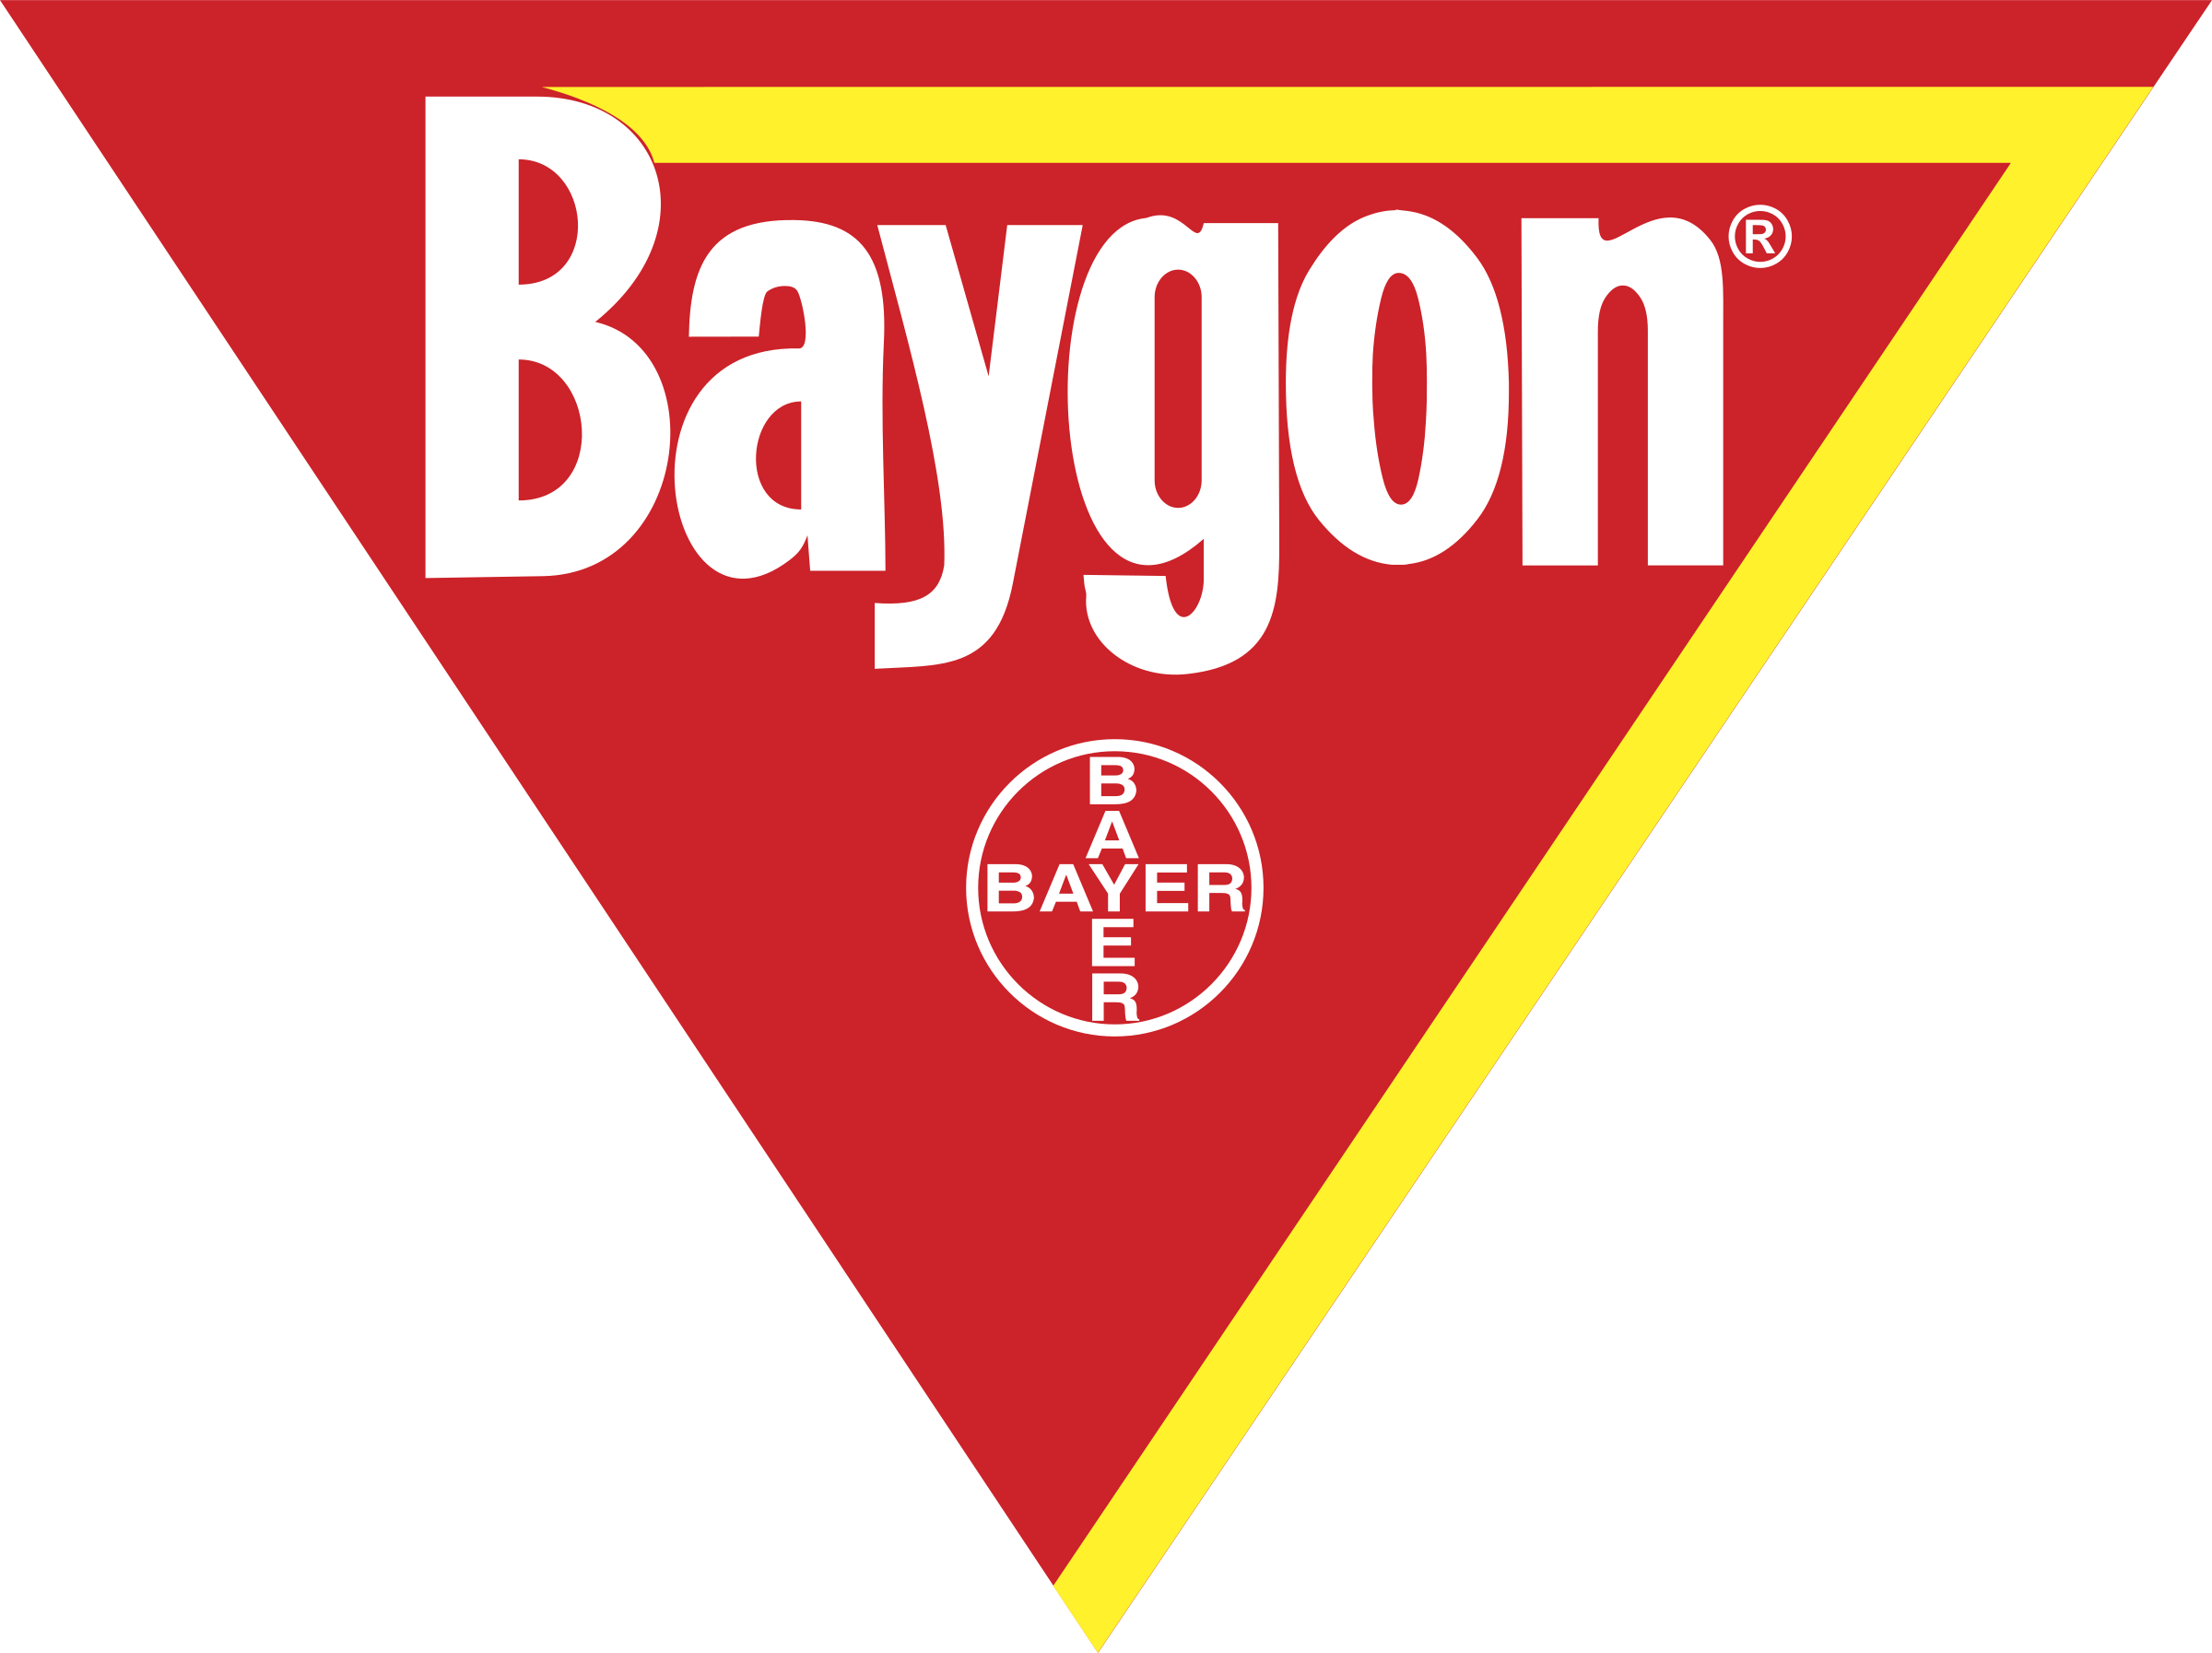 Baygon Logo PNG Transparent & SVG Vector.